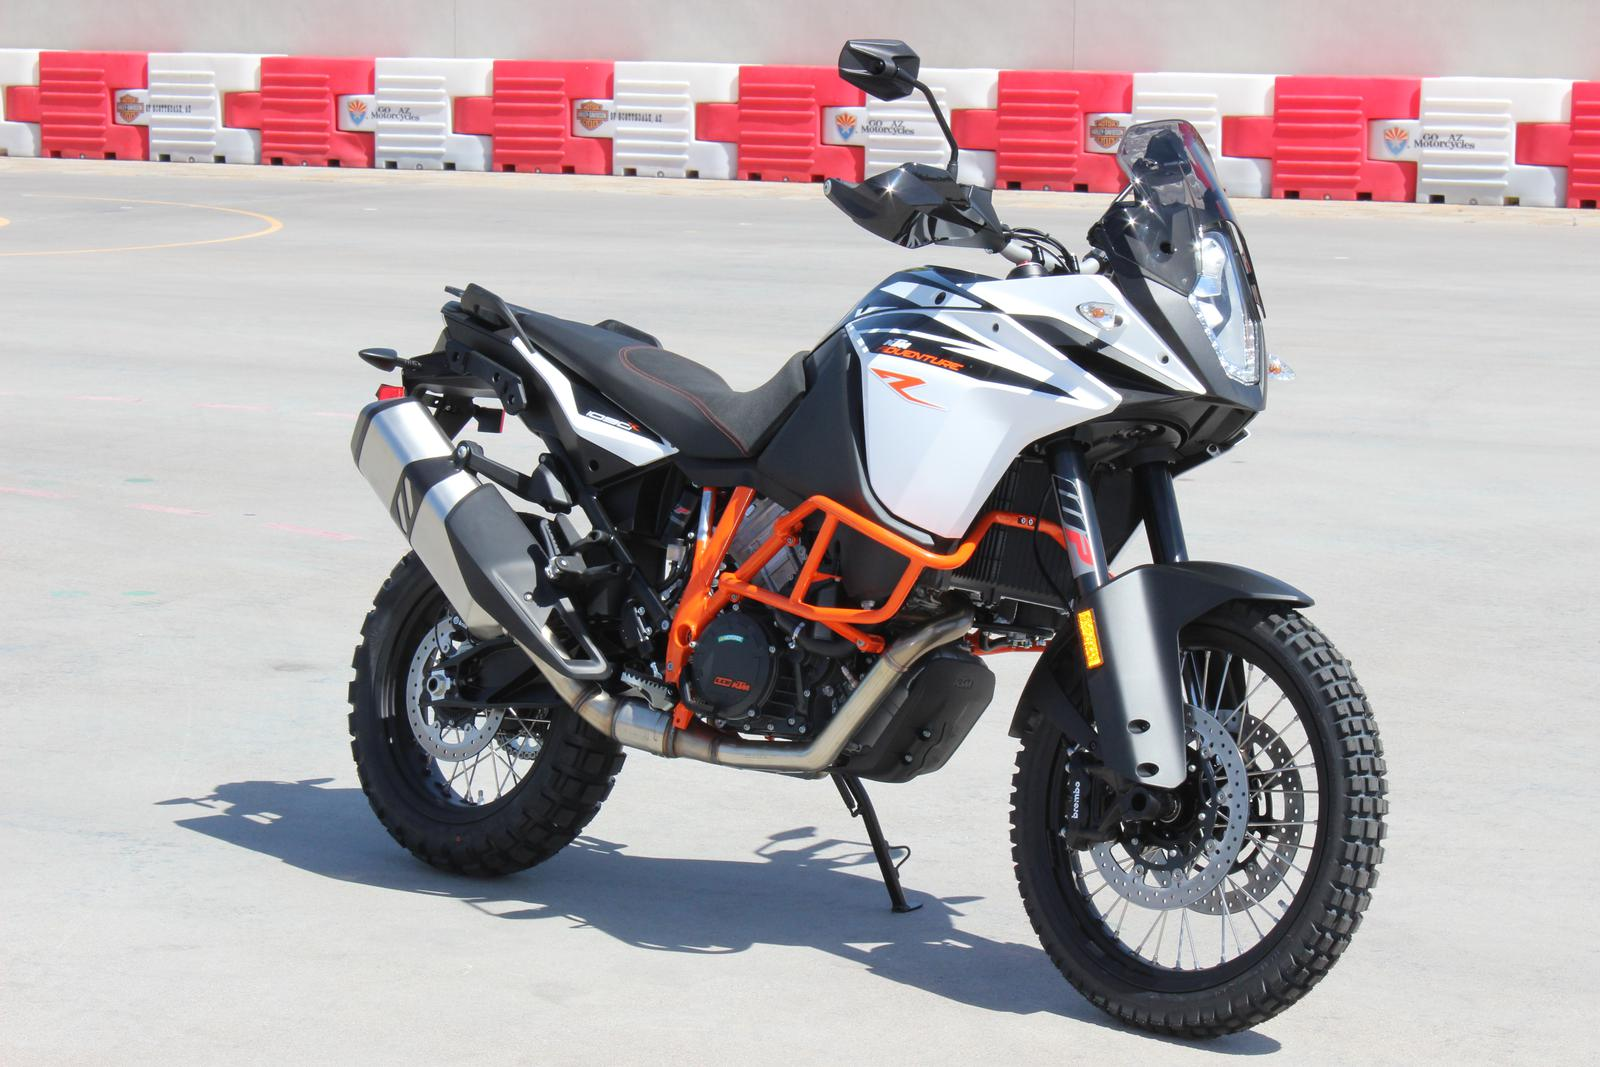 2018 KTM 1090 ADVENTURE R for sale in Scottsdale, AZ | GO AZ Motorcycles in  Scottsdale (480) 609-1800